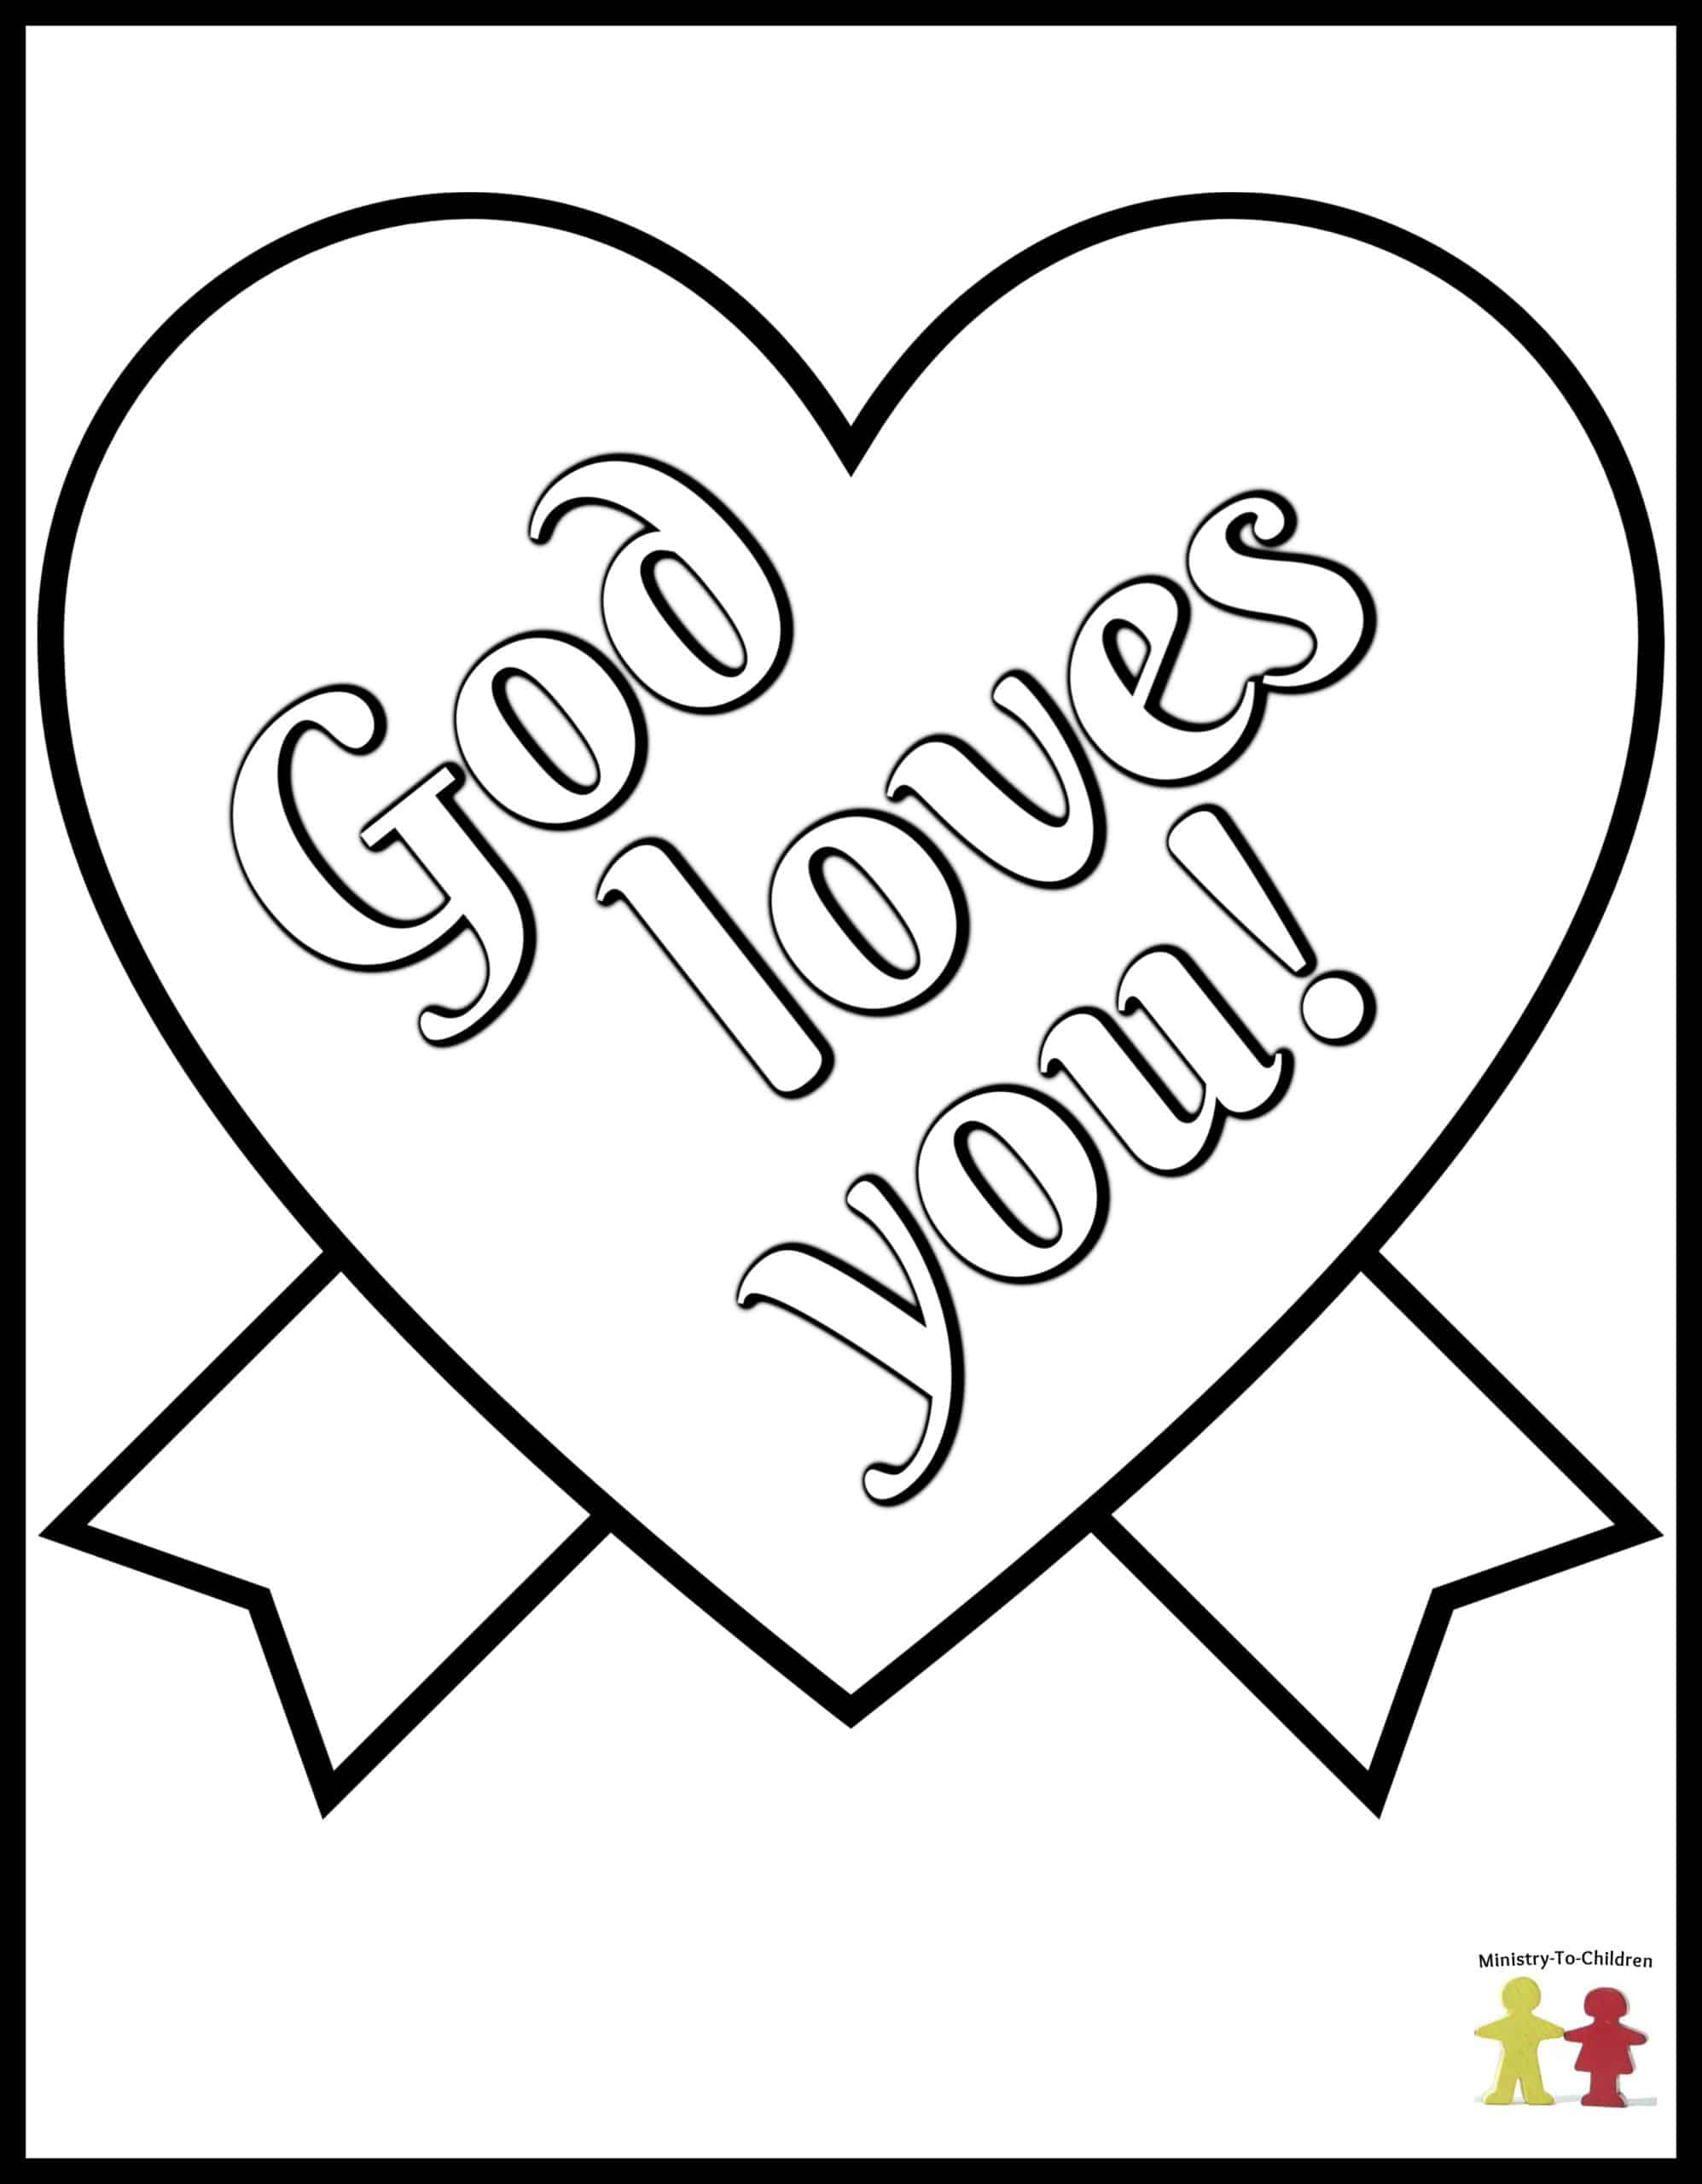 free christian coloring pages of a heart | Christian Valentines Day Coloring Pages about Love (100% Free)